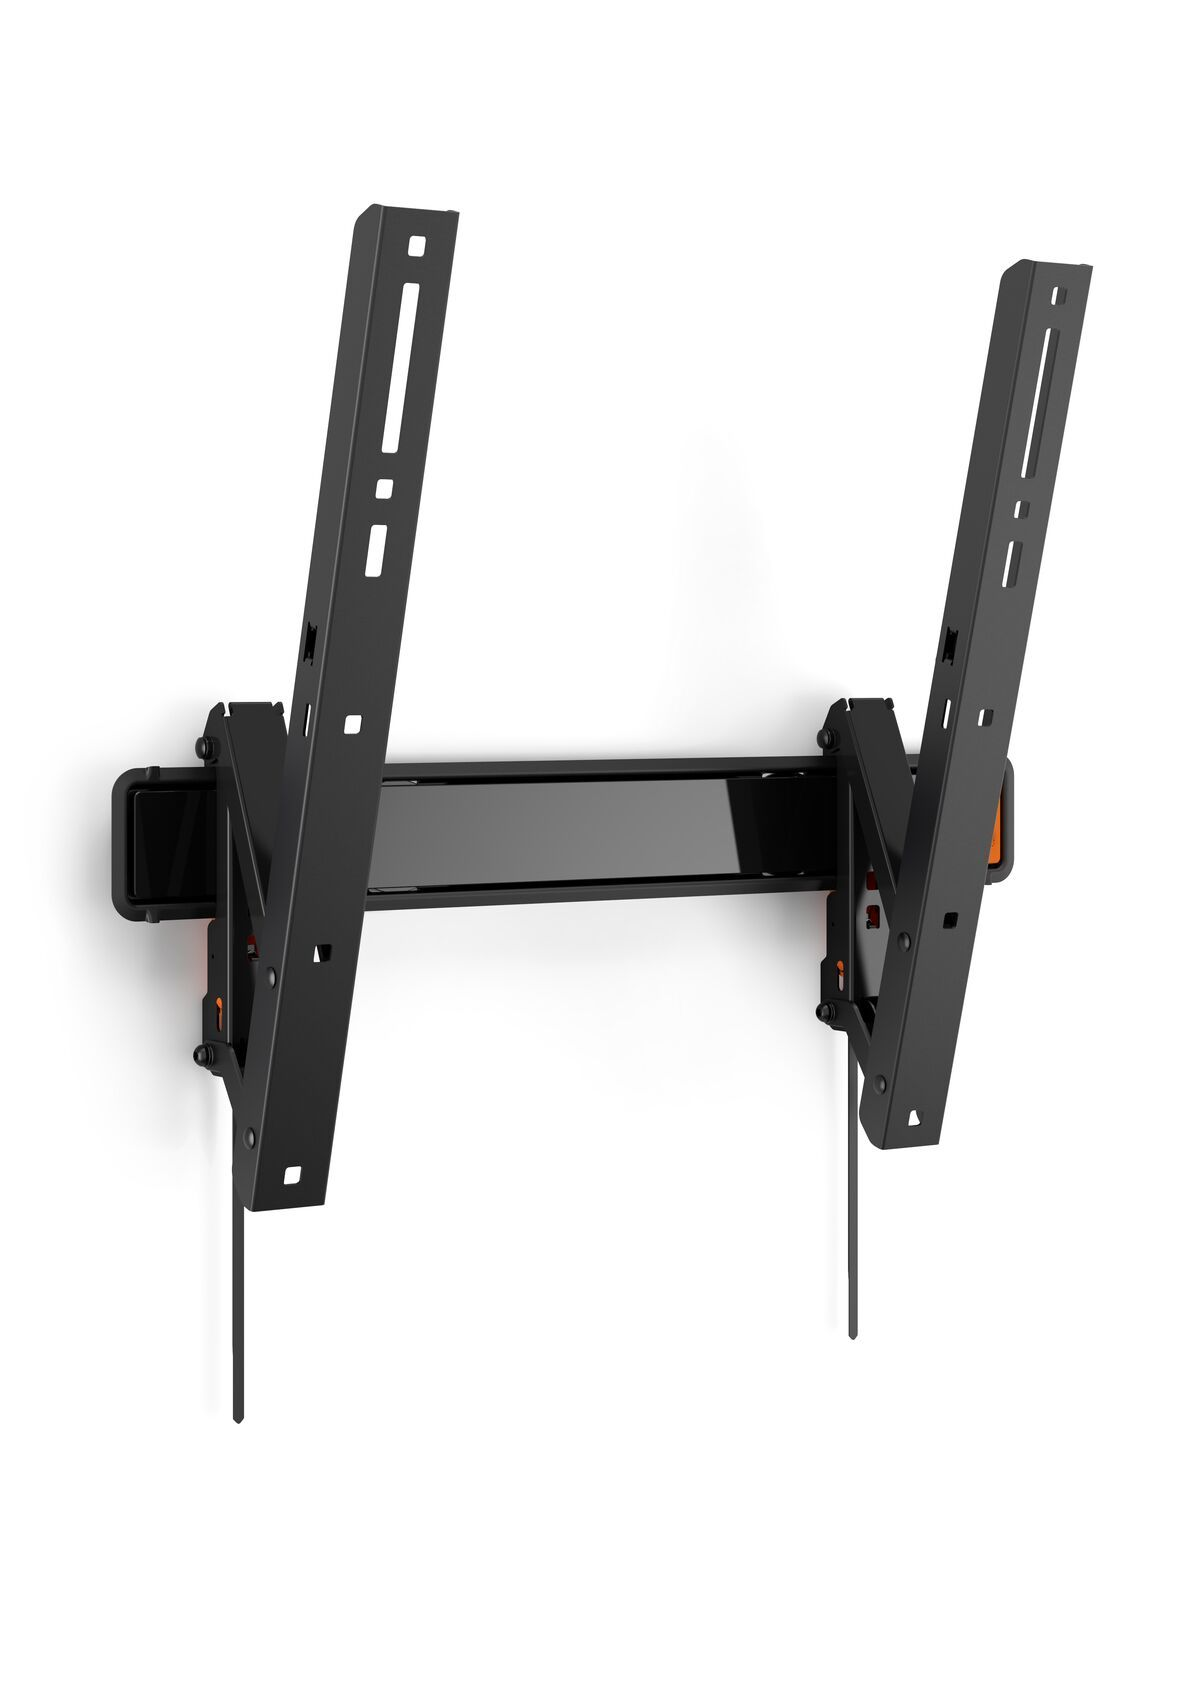 Vogel's W50710 Tilting TV Wall Mount - Suitable for 32 up to 55 inch TVs up to 30 kg - - Product